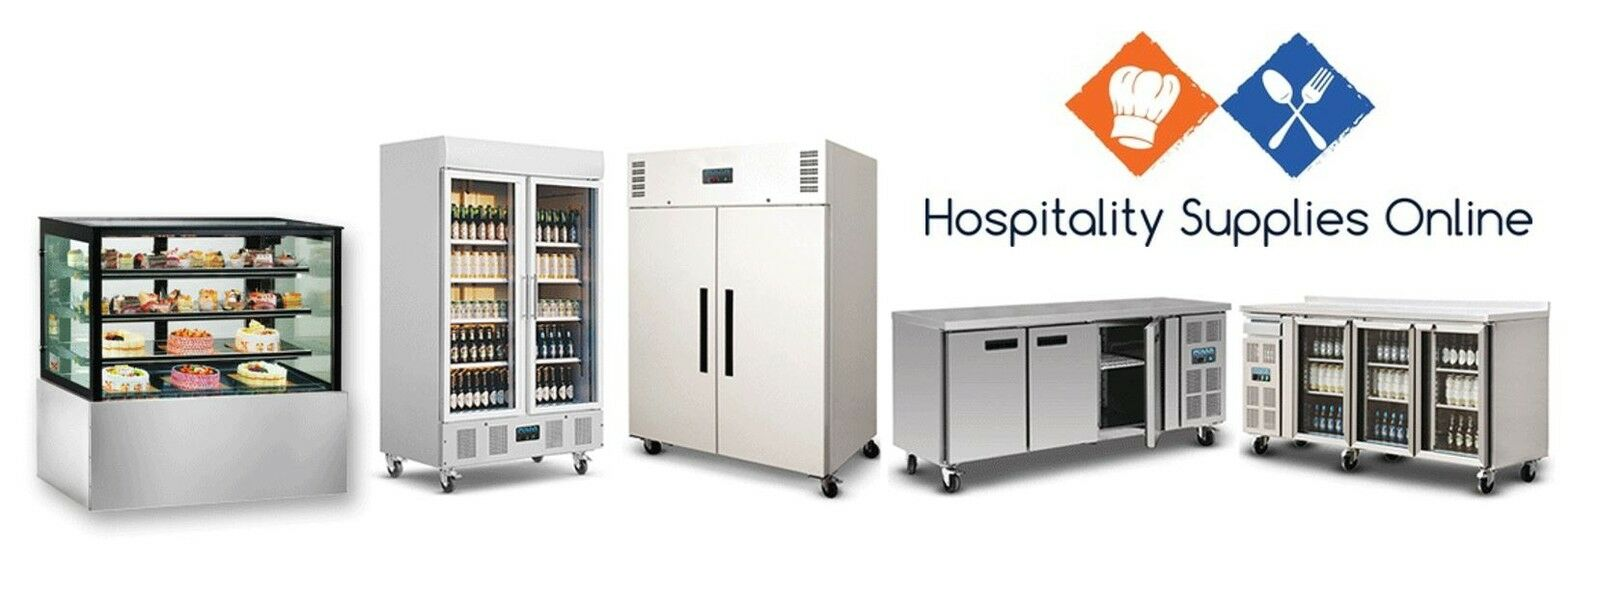 Hospitality Supplies Online